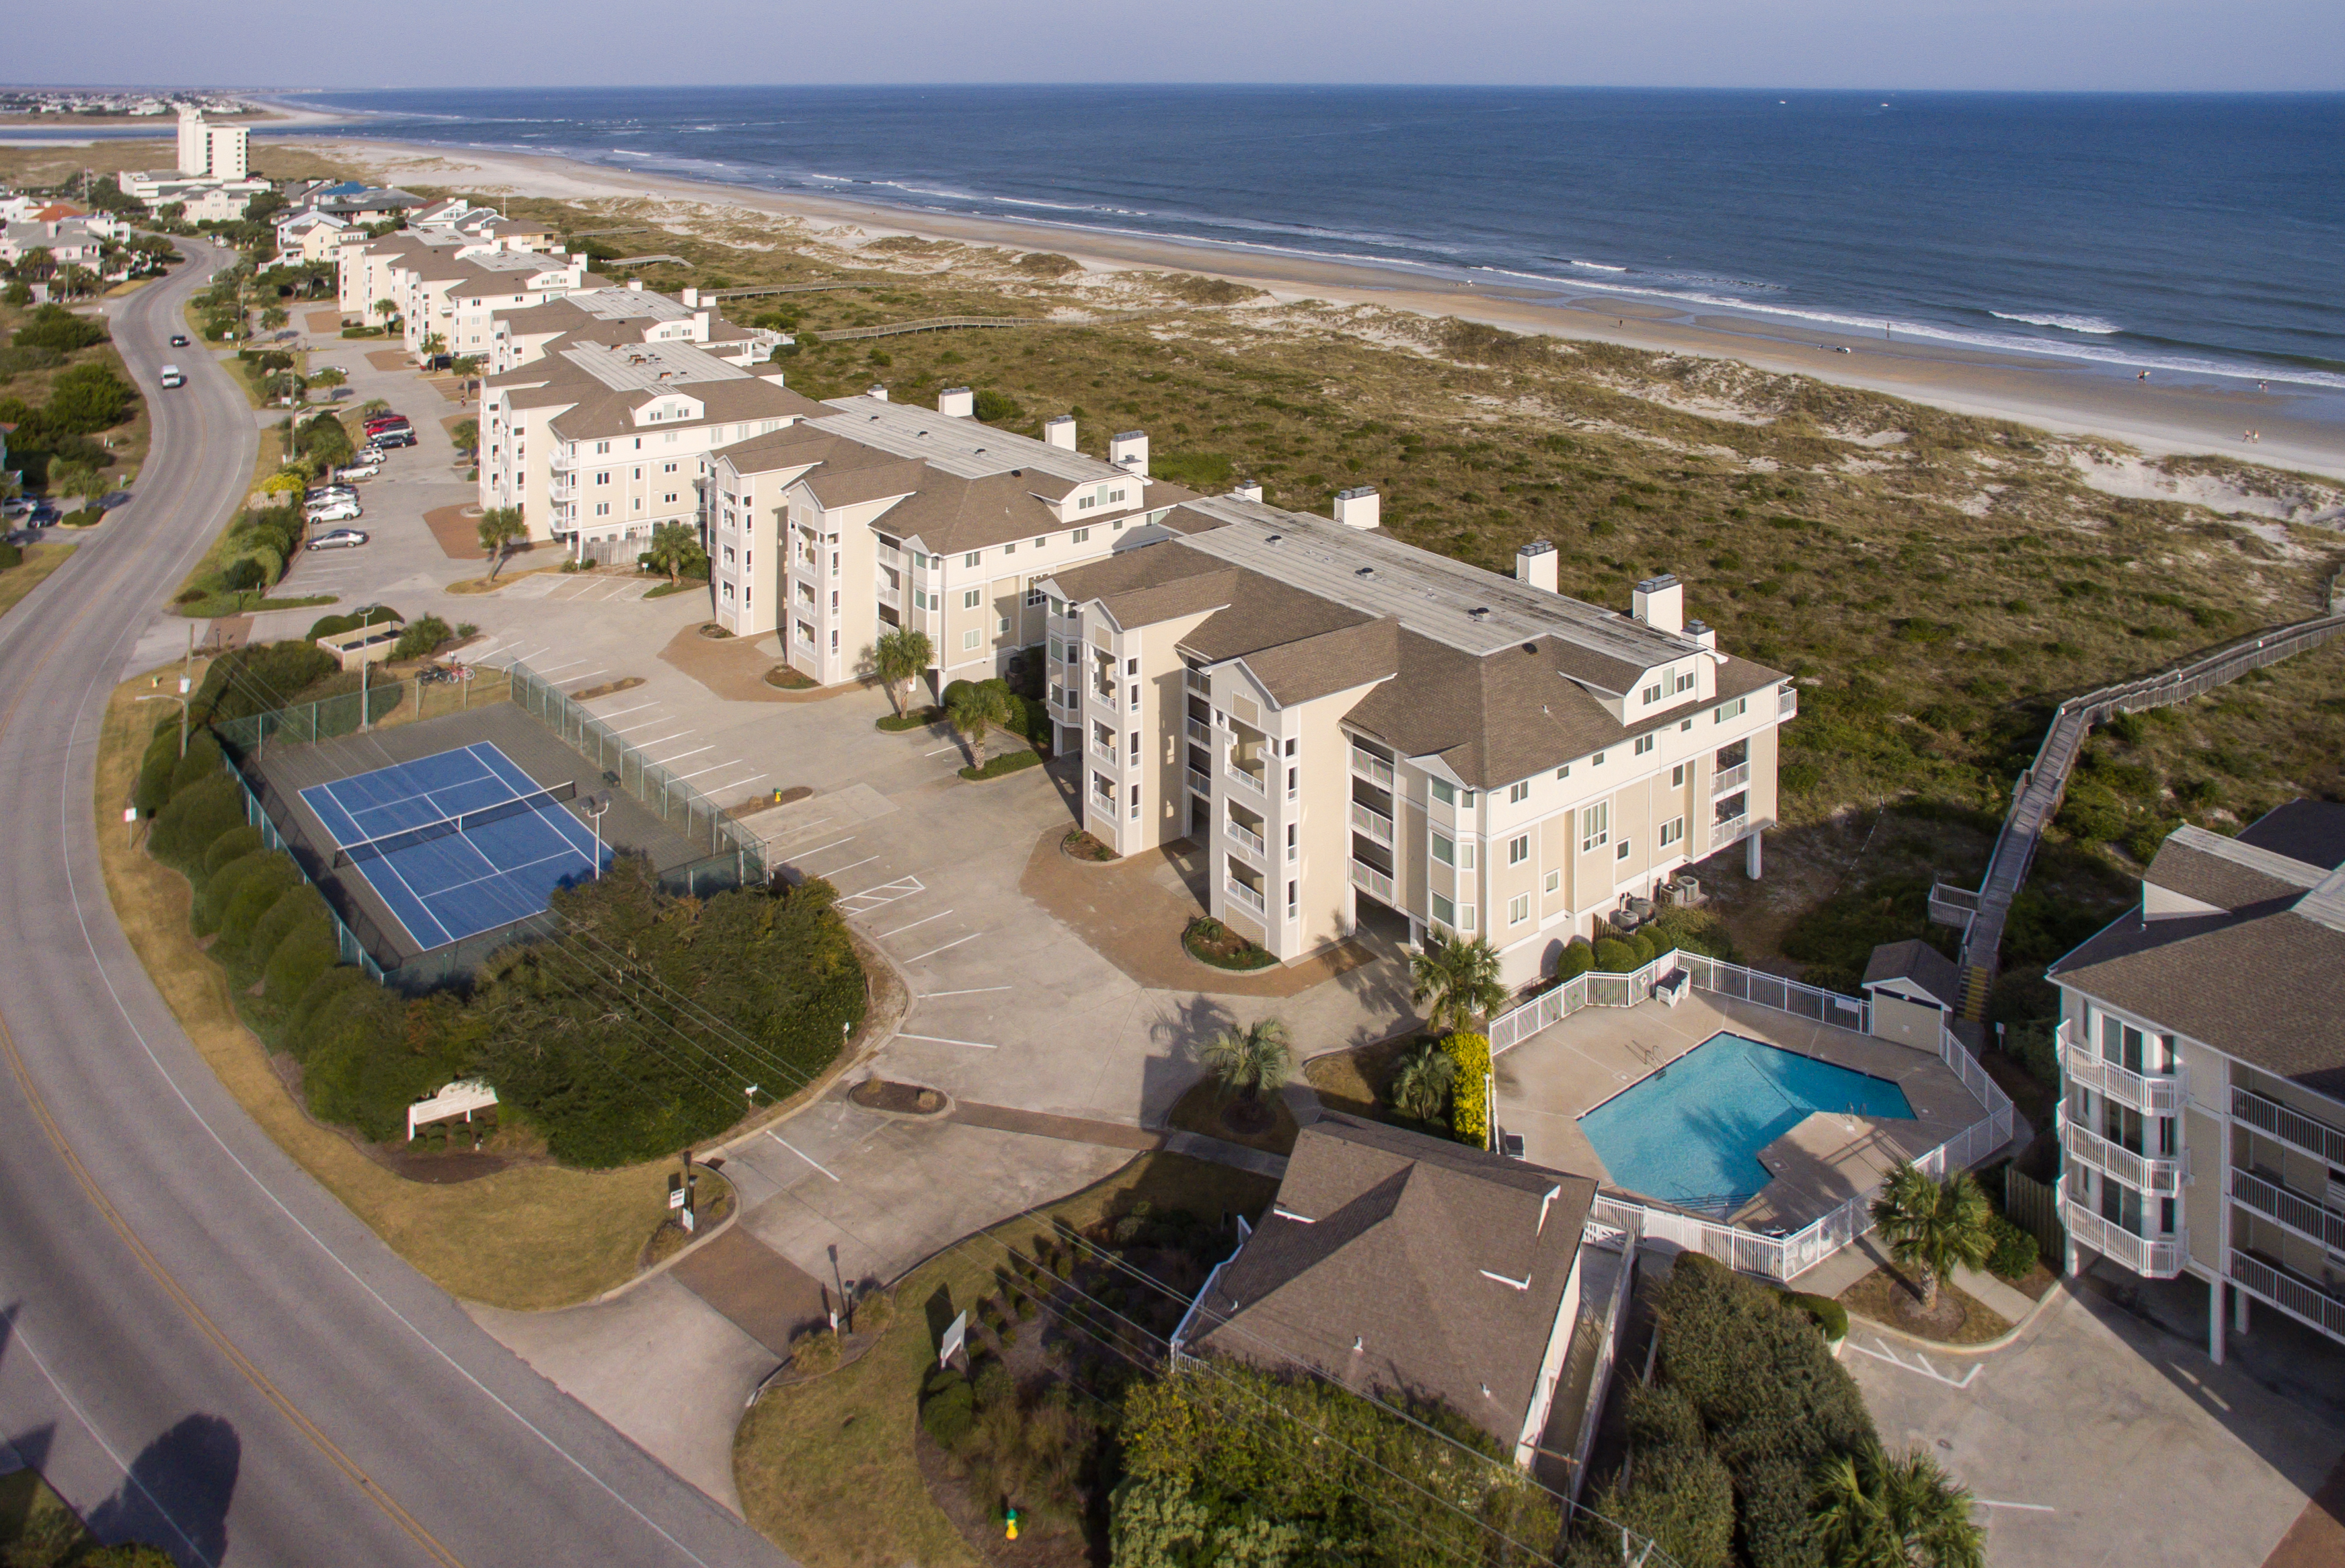 If You Need A Three Bedroom Condo Facing The Ocean On North End Of Wrightsville Beach Dunes Is Place For